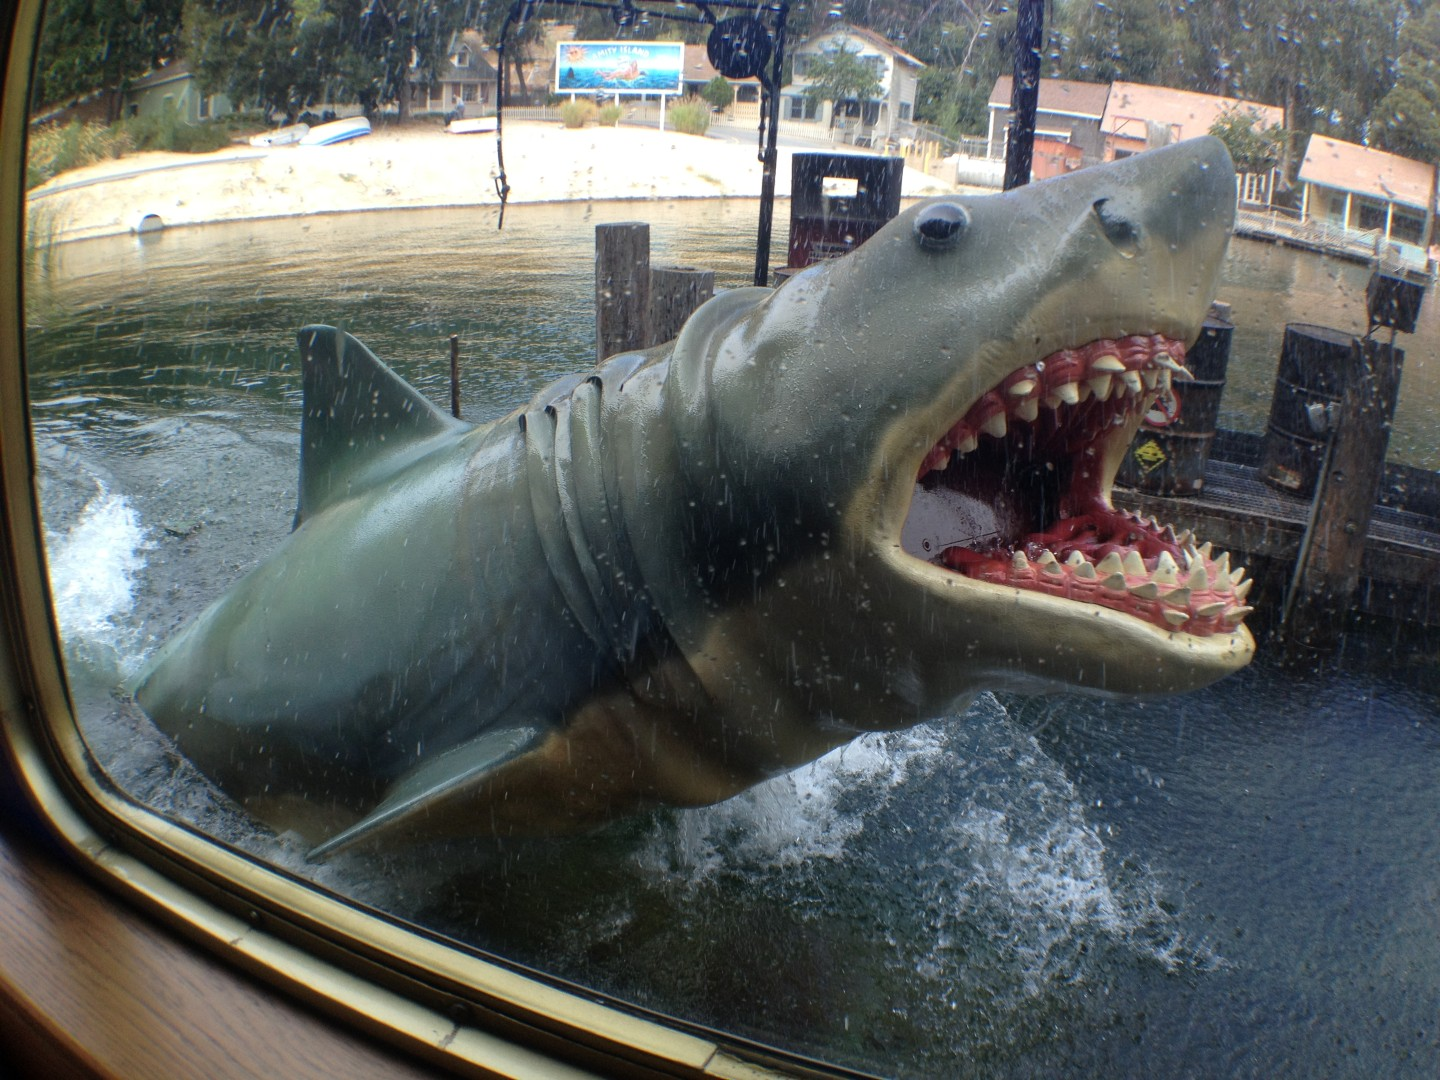 One Fish, Two Fish, Red Fish, Blue Fish Universal Orlando, IamA former skipper on the JAWS ride at Universal Orlando AMA! : IAmA